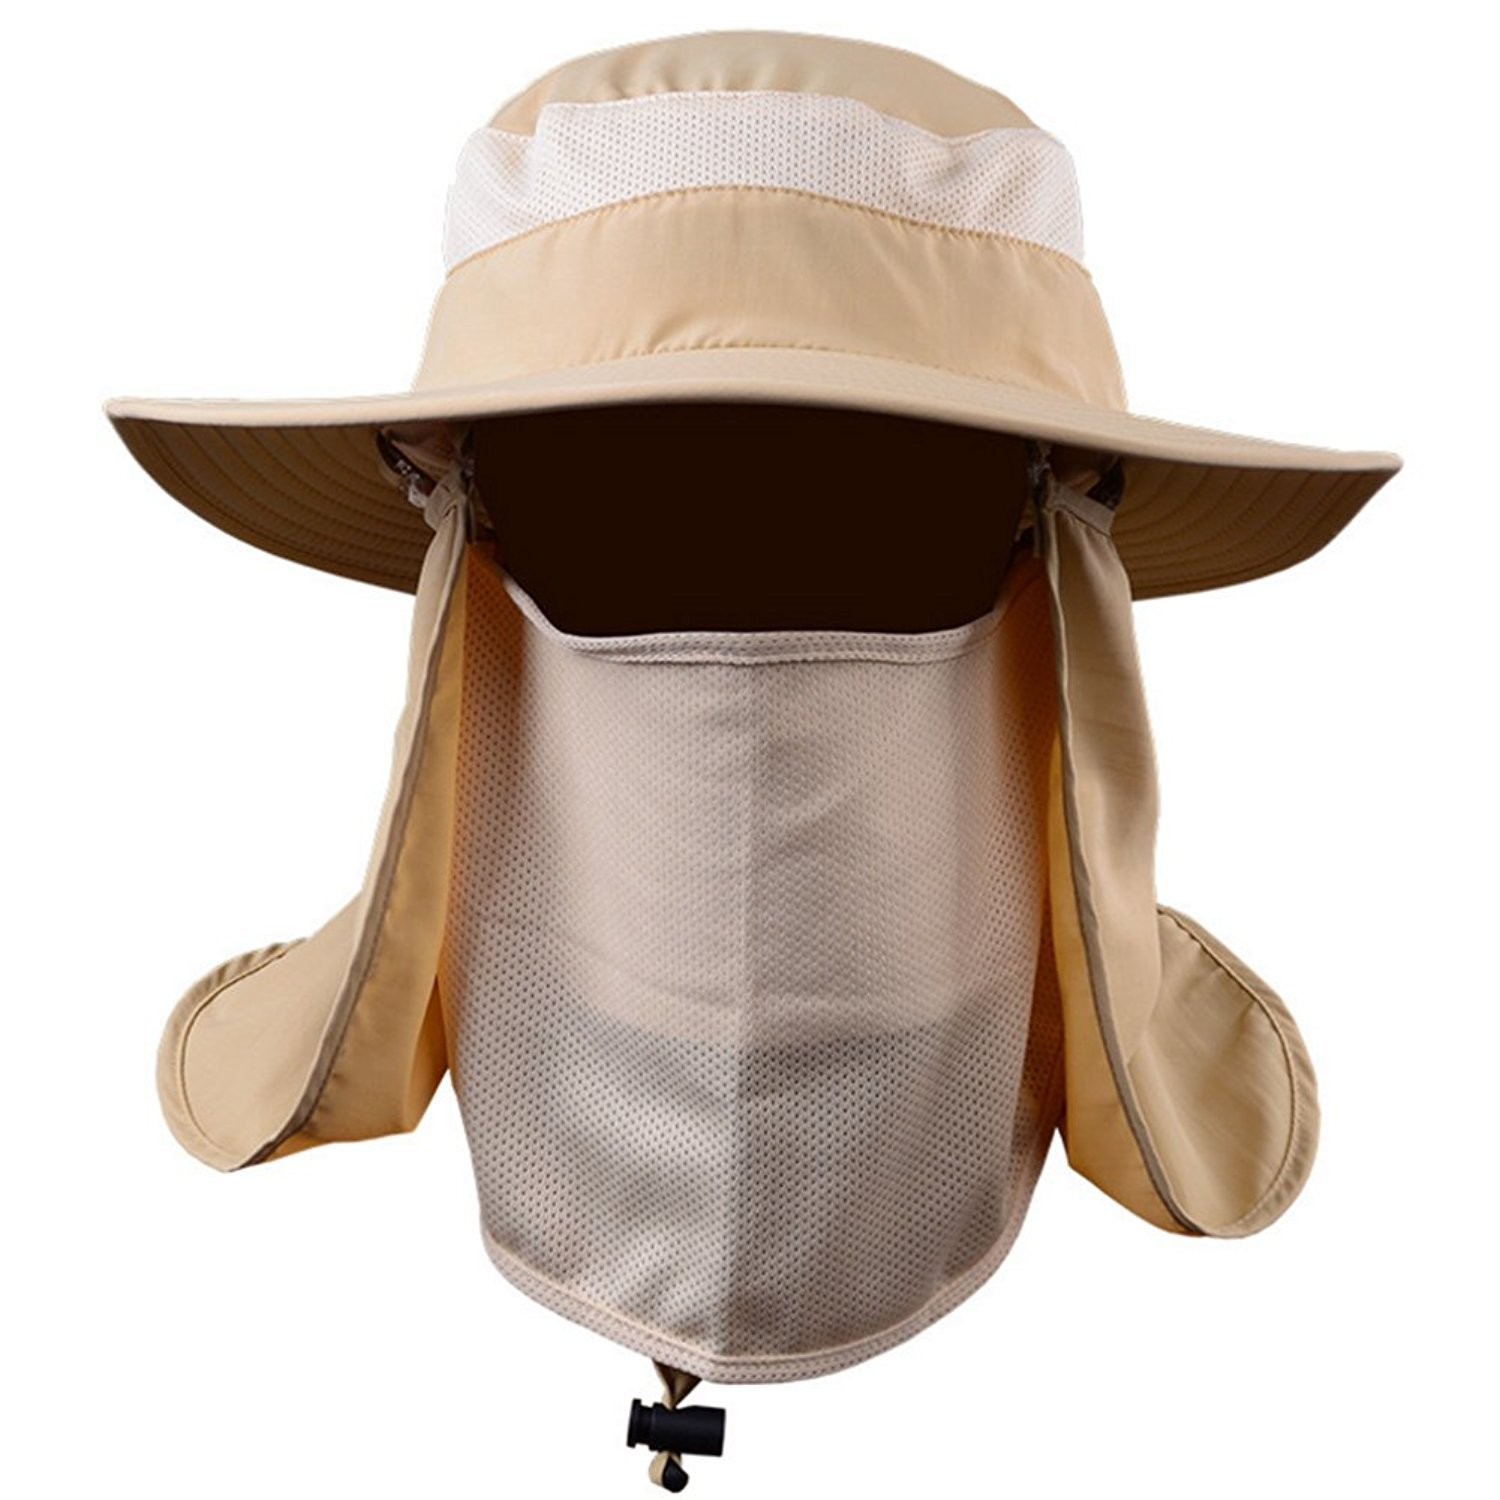 328be8156a790 Mens Outdoor Legionnaire Hat Camping Fishing Hunting Fully Sun Protection  Hat Cap with Flap Neck Protector Detachable Mesh Mouth Mask UPF 50+ Anti-UV  Summer ...